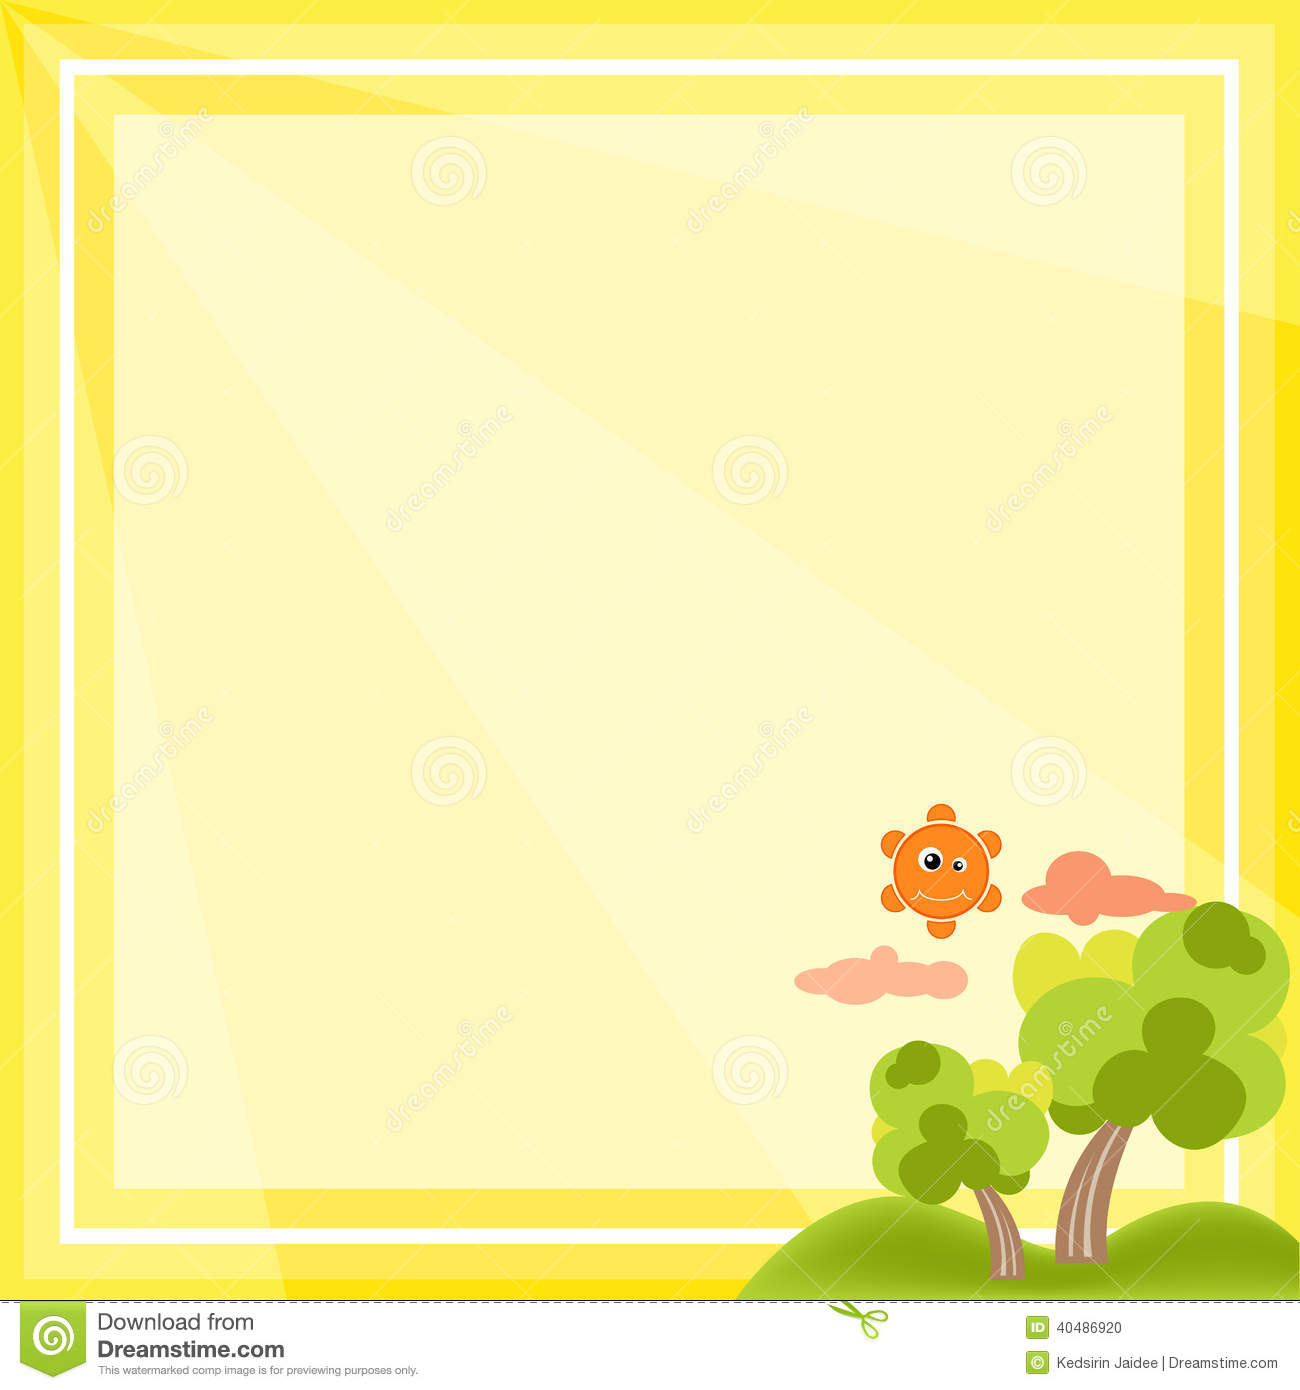 natural frame cartoon vector on yellow background - Natural Frame